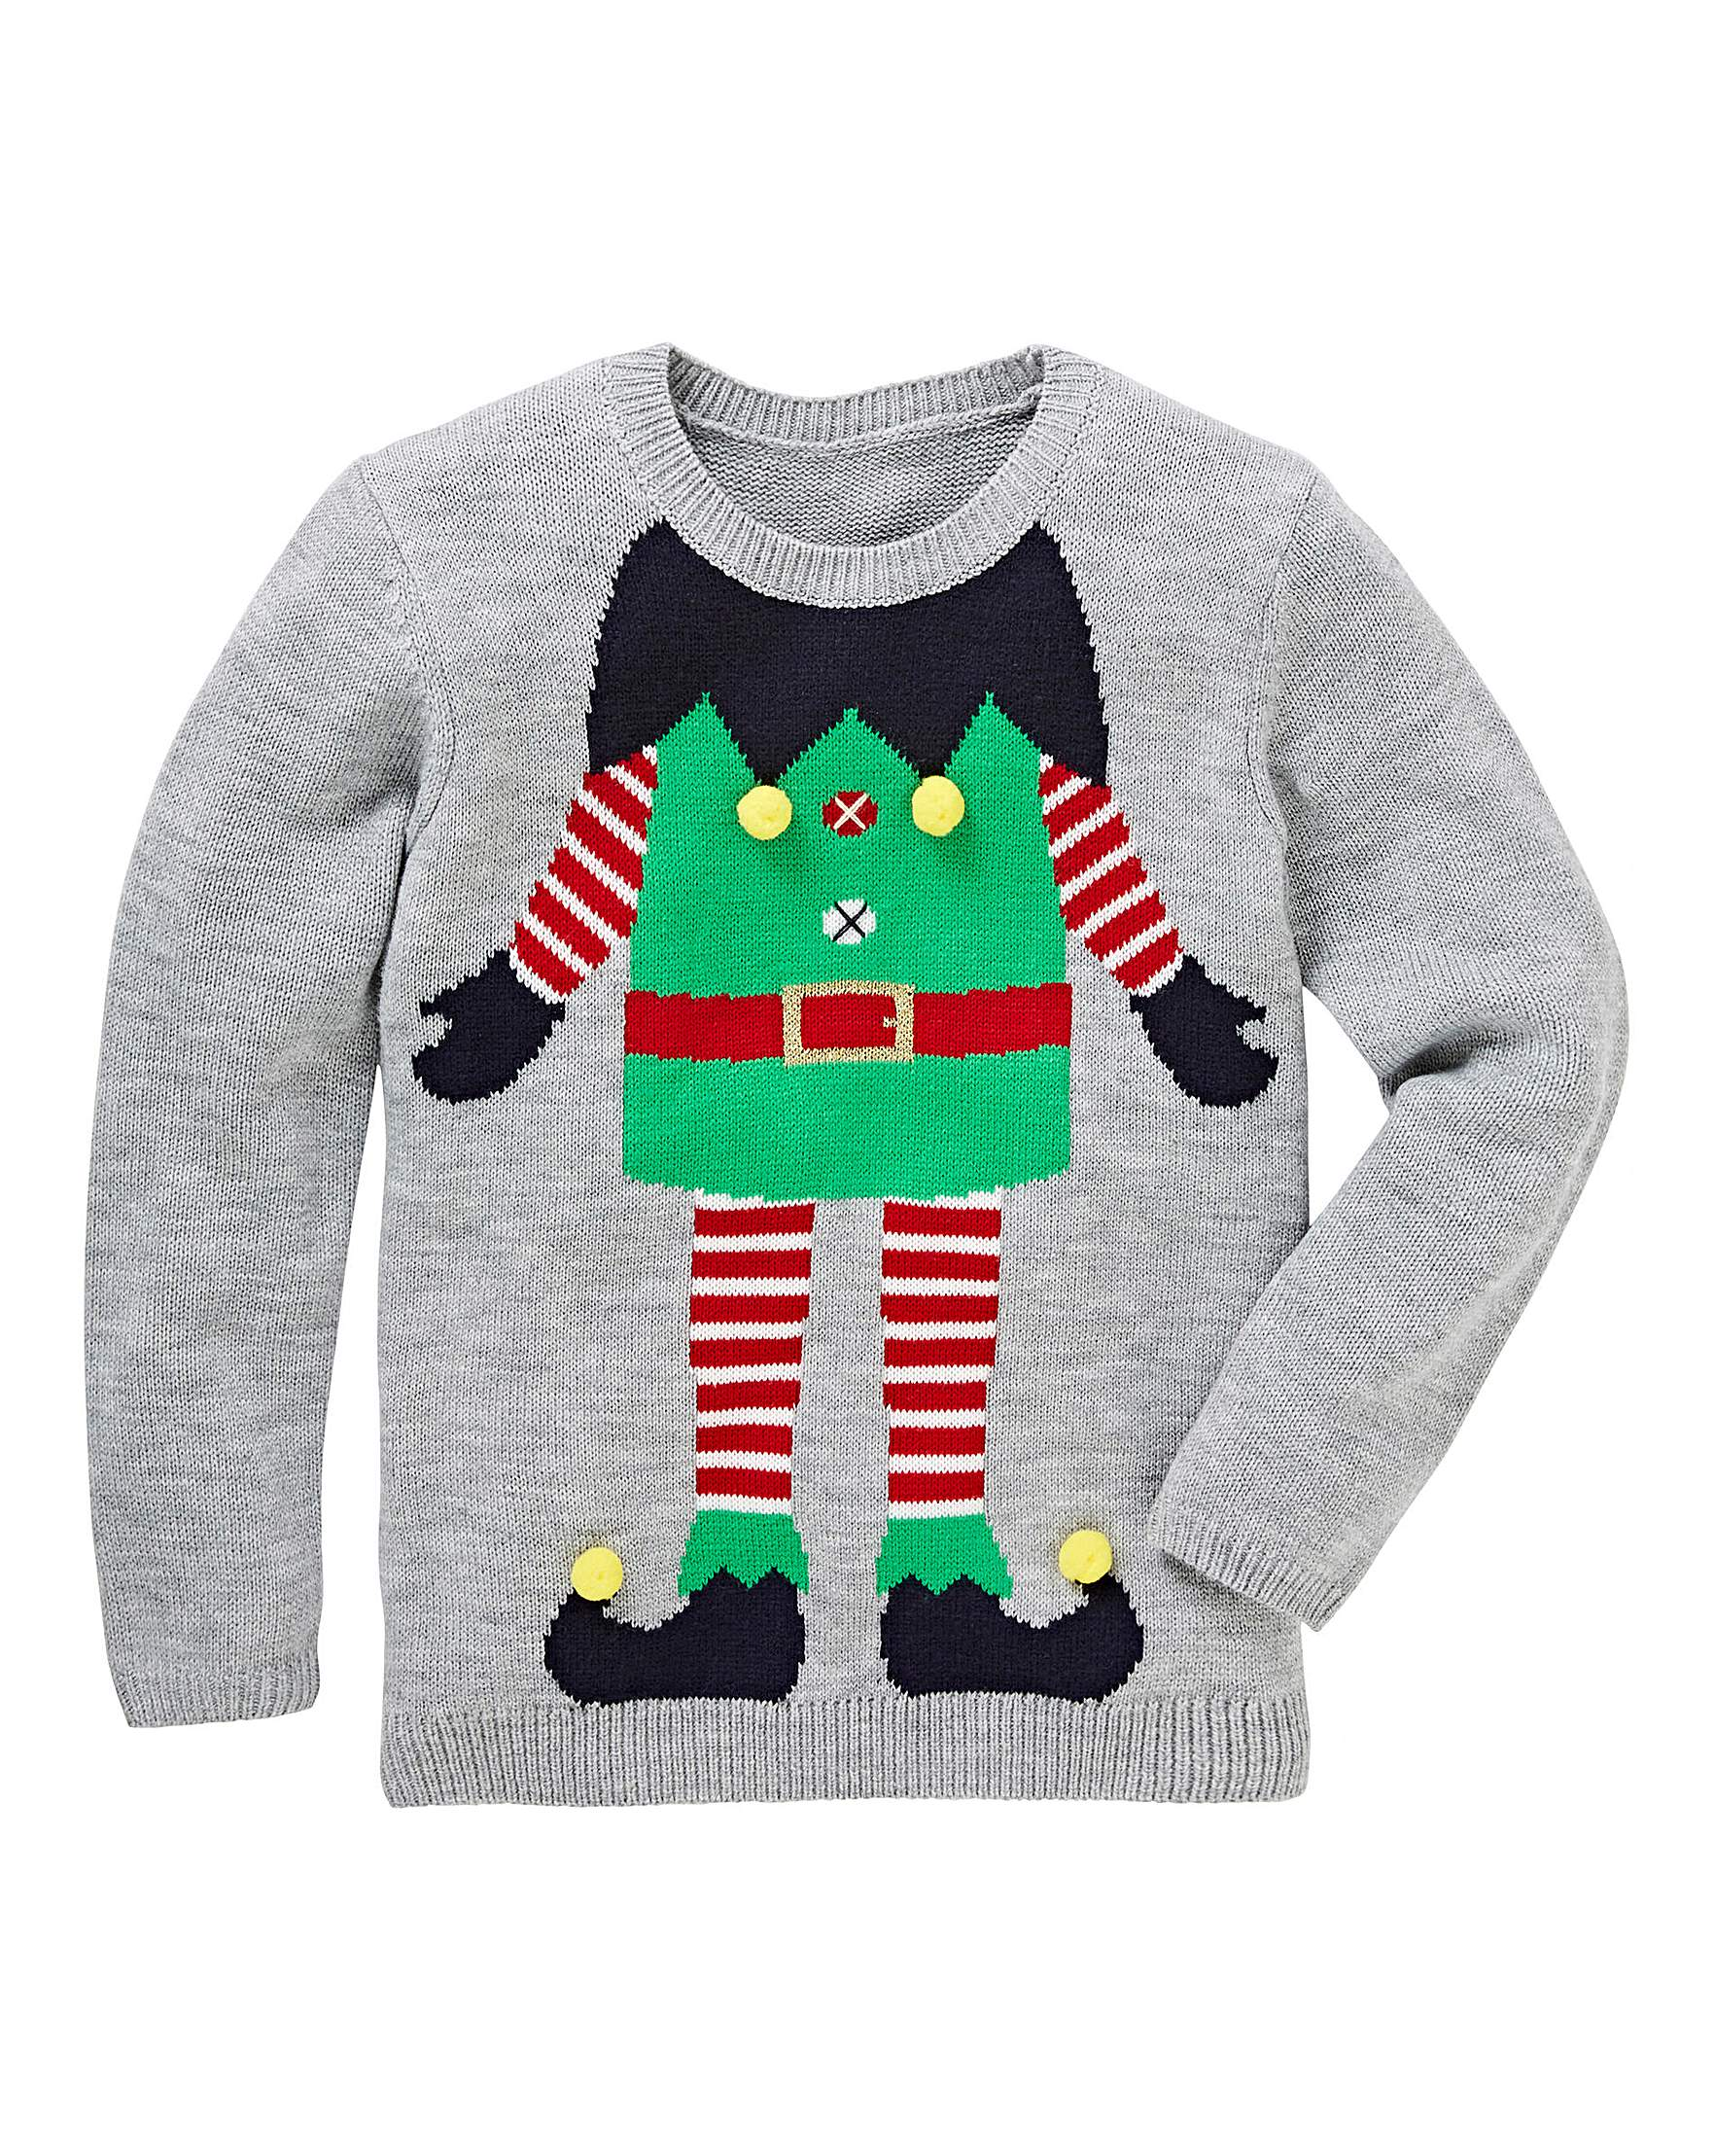 Kd christmas knitted elf jumper williams jpg 1764x2217 Christmas elf group 74a24ecb2